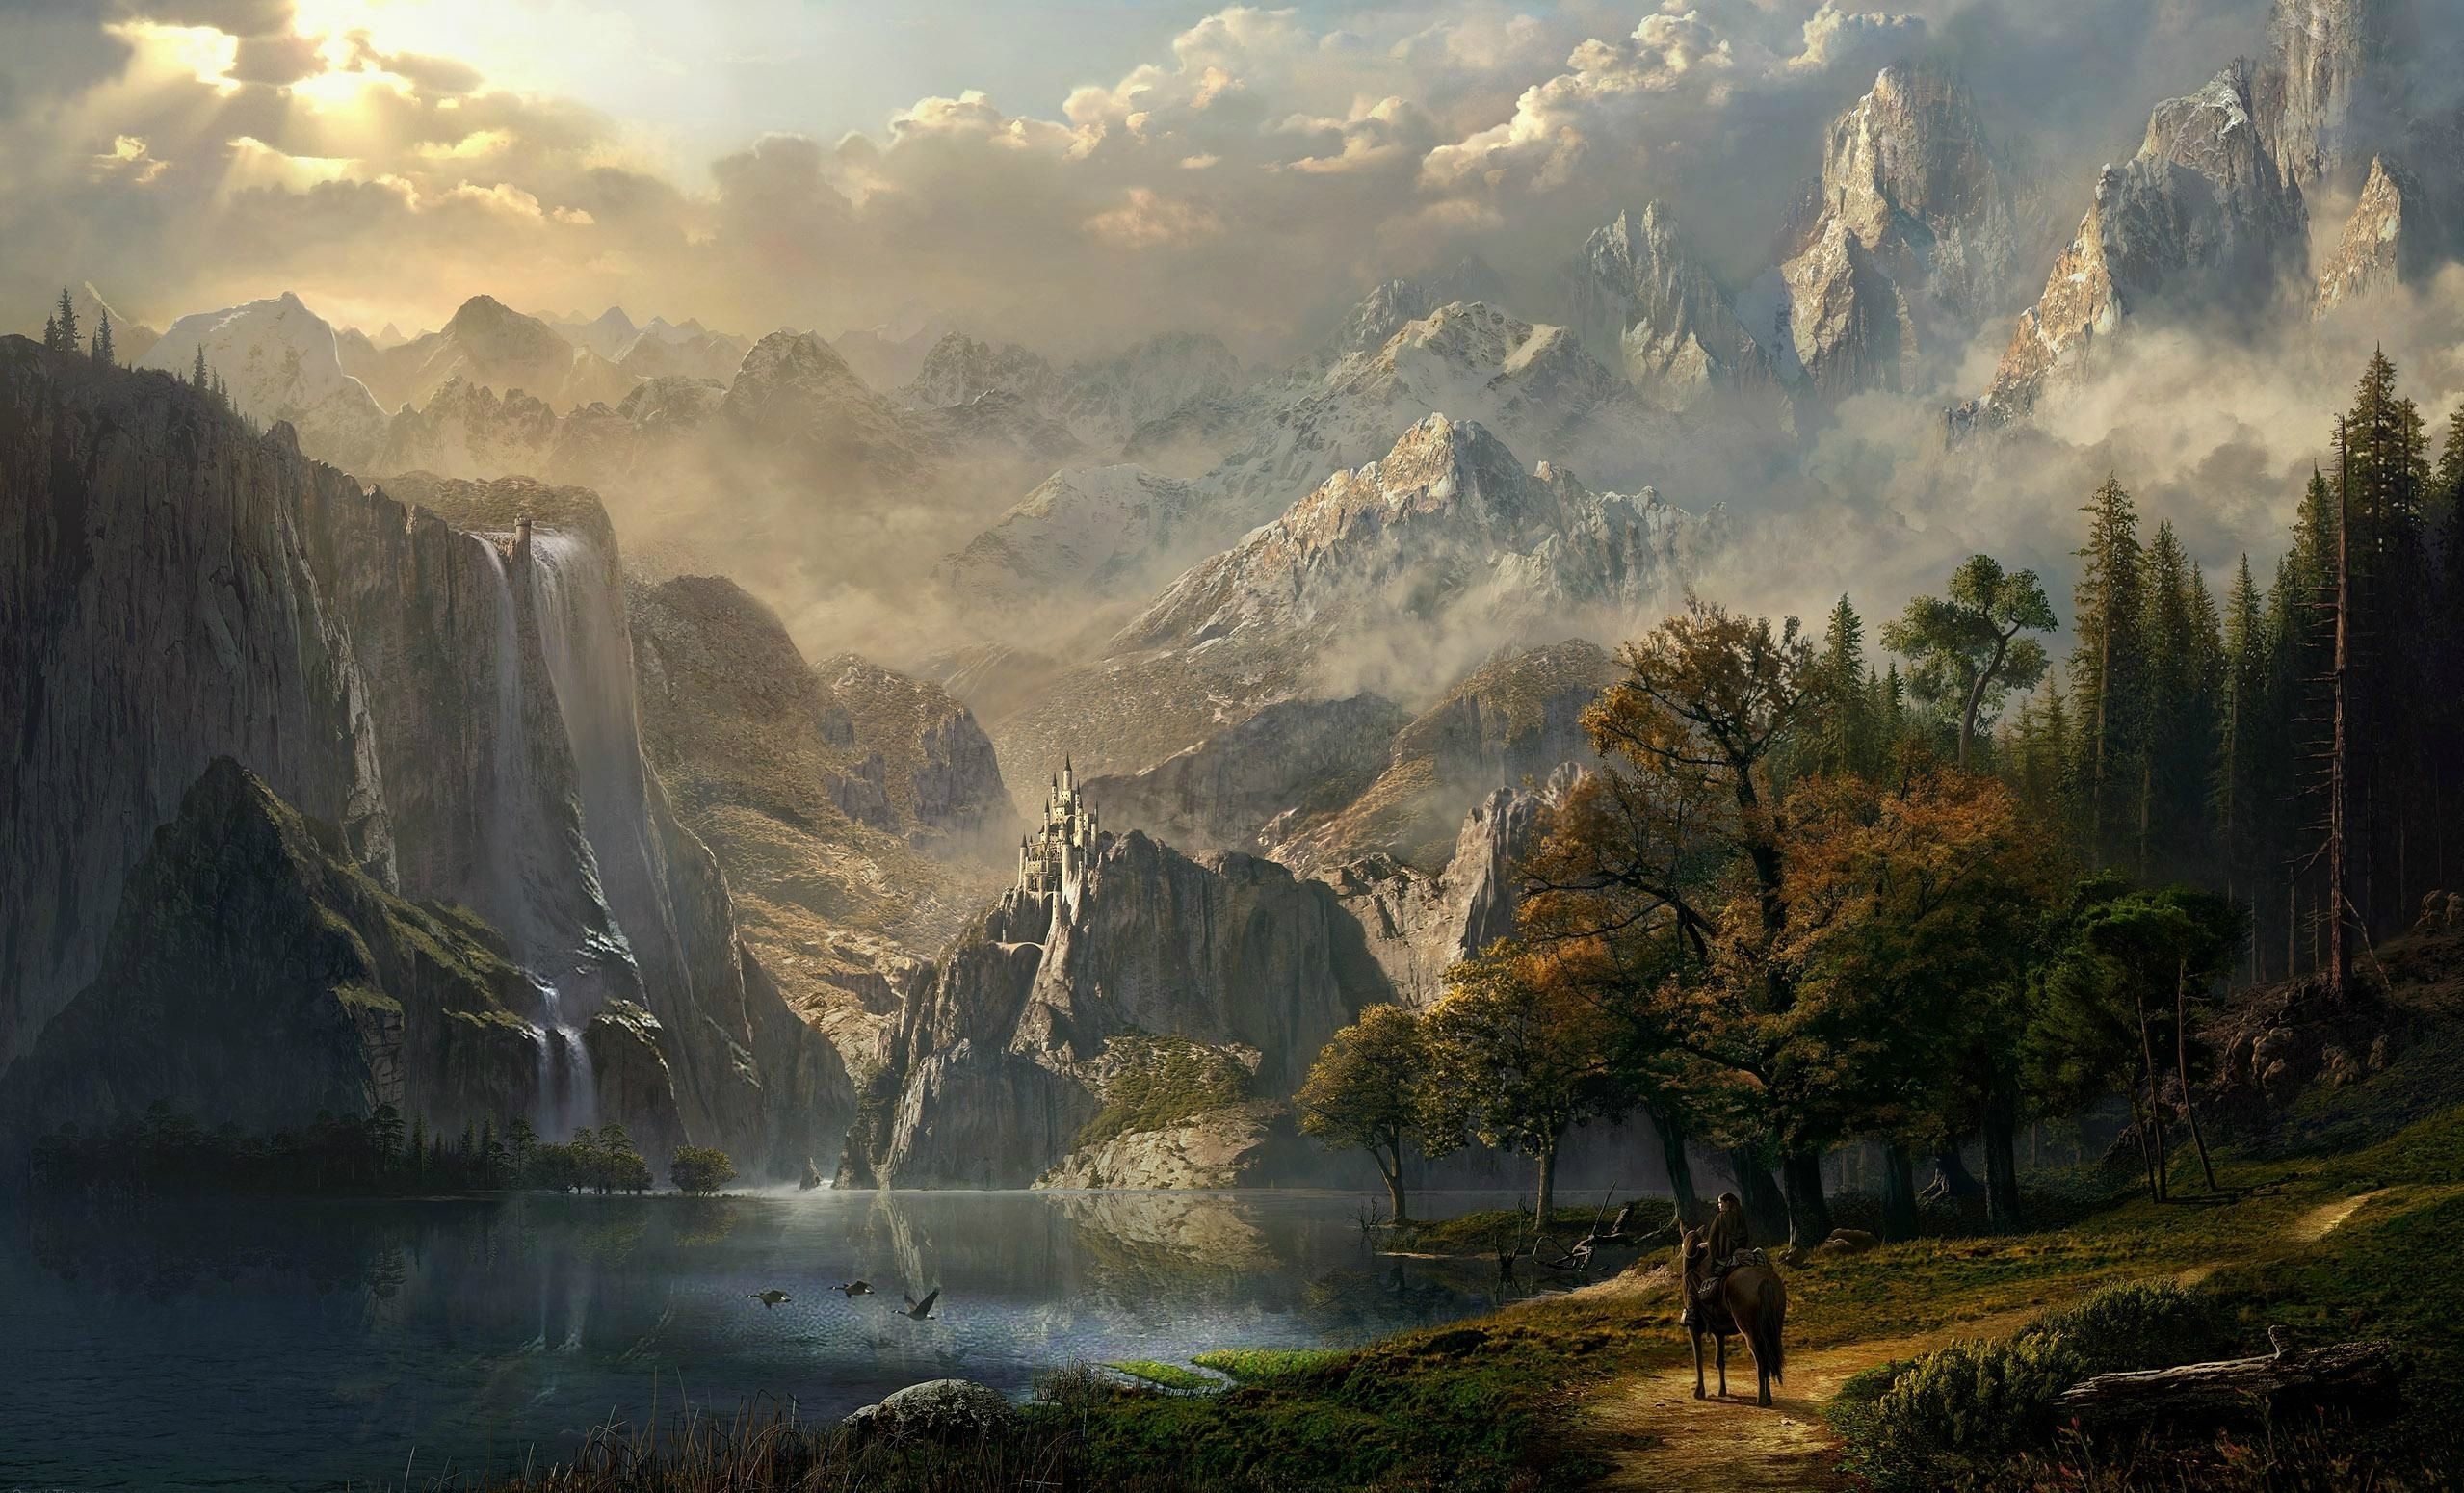 View Of The Castle Across The Lake Computer Wallpapers Desktop Backgrounds 2558x1550 Id 152779 Fantasy Landscape Landscape Wallpaper Landscape Art